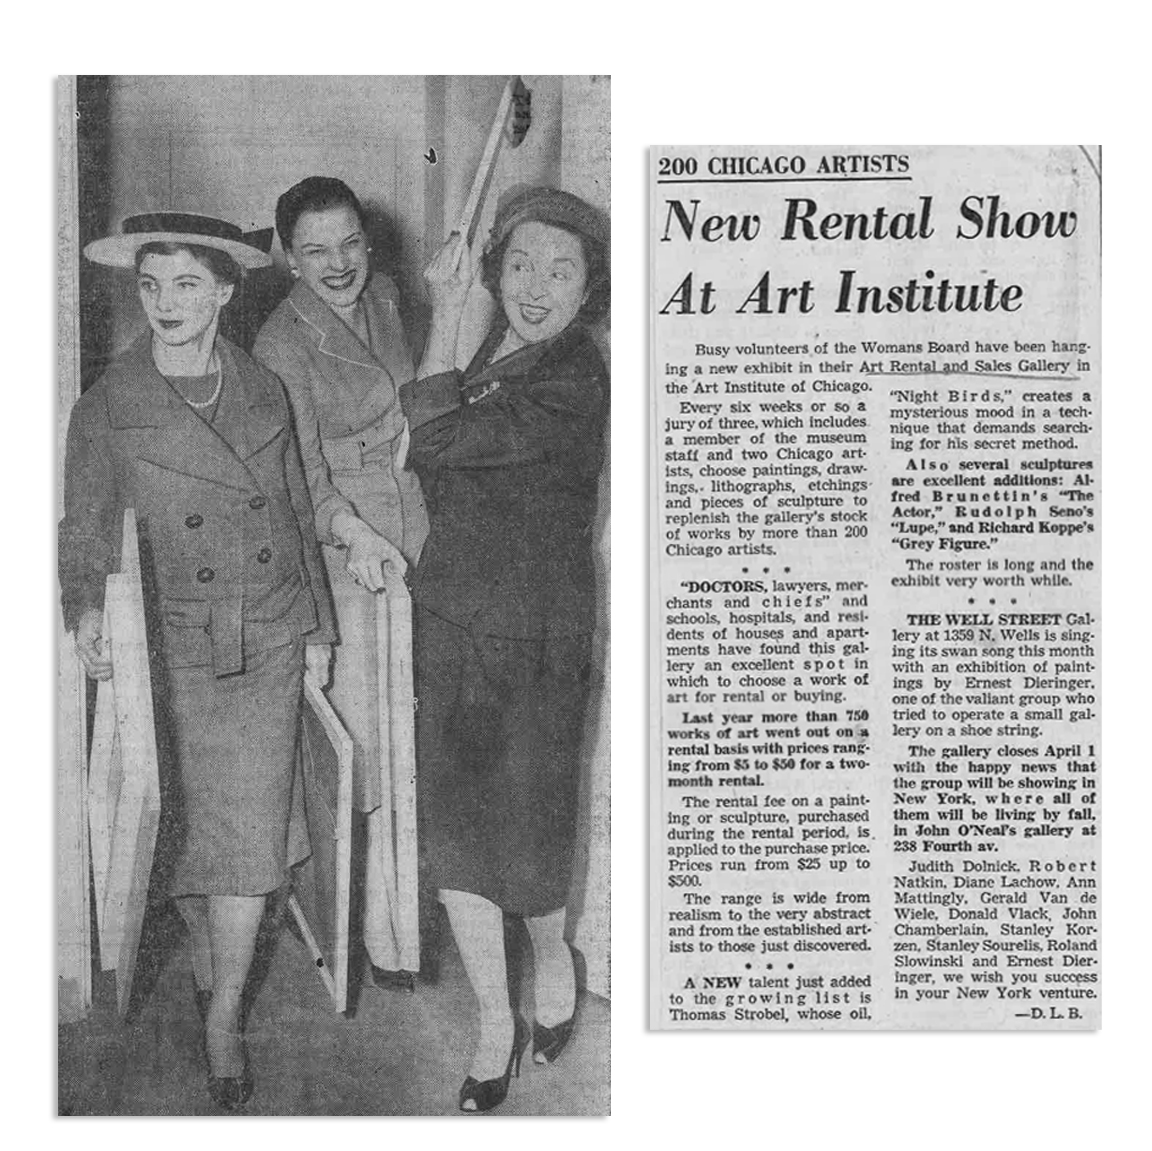 Mrs. Albert H. Newman, Mrs. J. Sanford Rose, and Mrs. Homer Hargrave Sr. help transport paintings to and from the Art Rental and Sales Gallery in the Art Institute. (Courtesy Chicago Sun-Times)